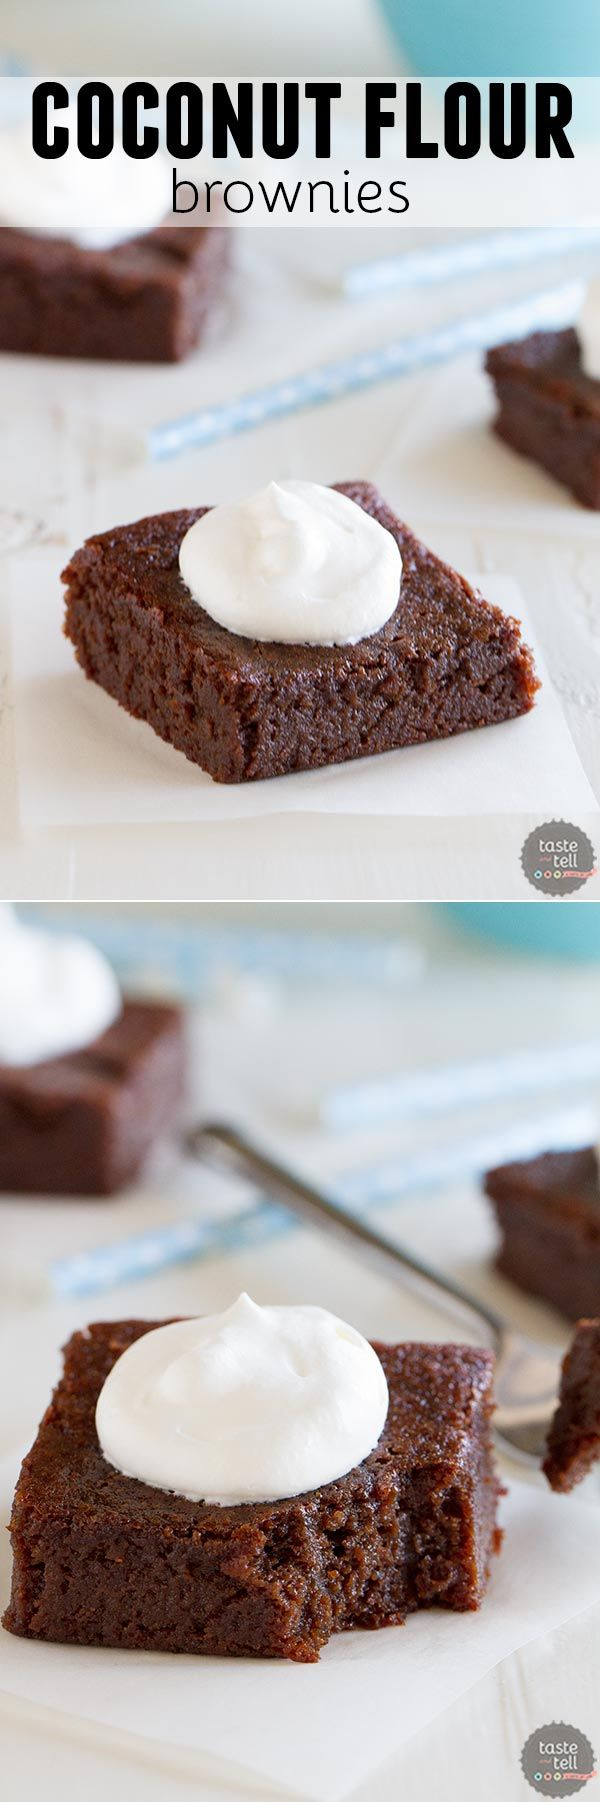 These moist, dense and fudgy Coconut Flour Brownies will convert you even if you aren't grain free! Dairy free option is also included.